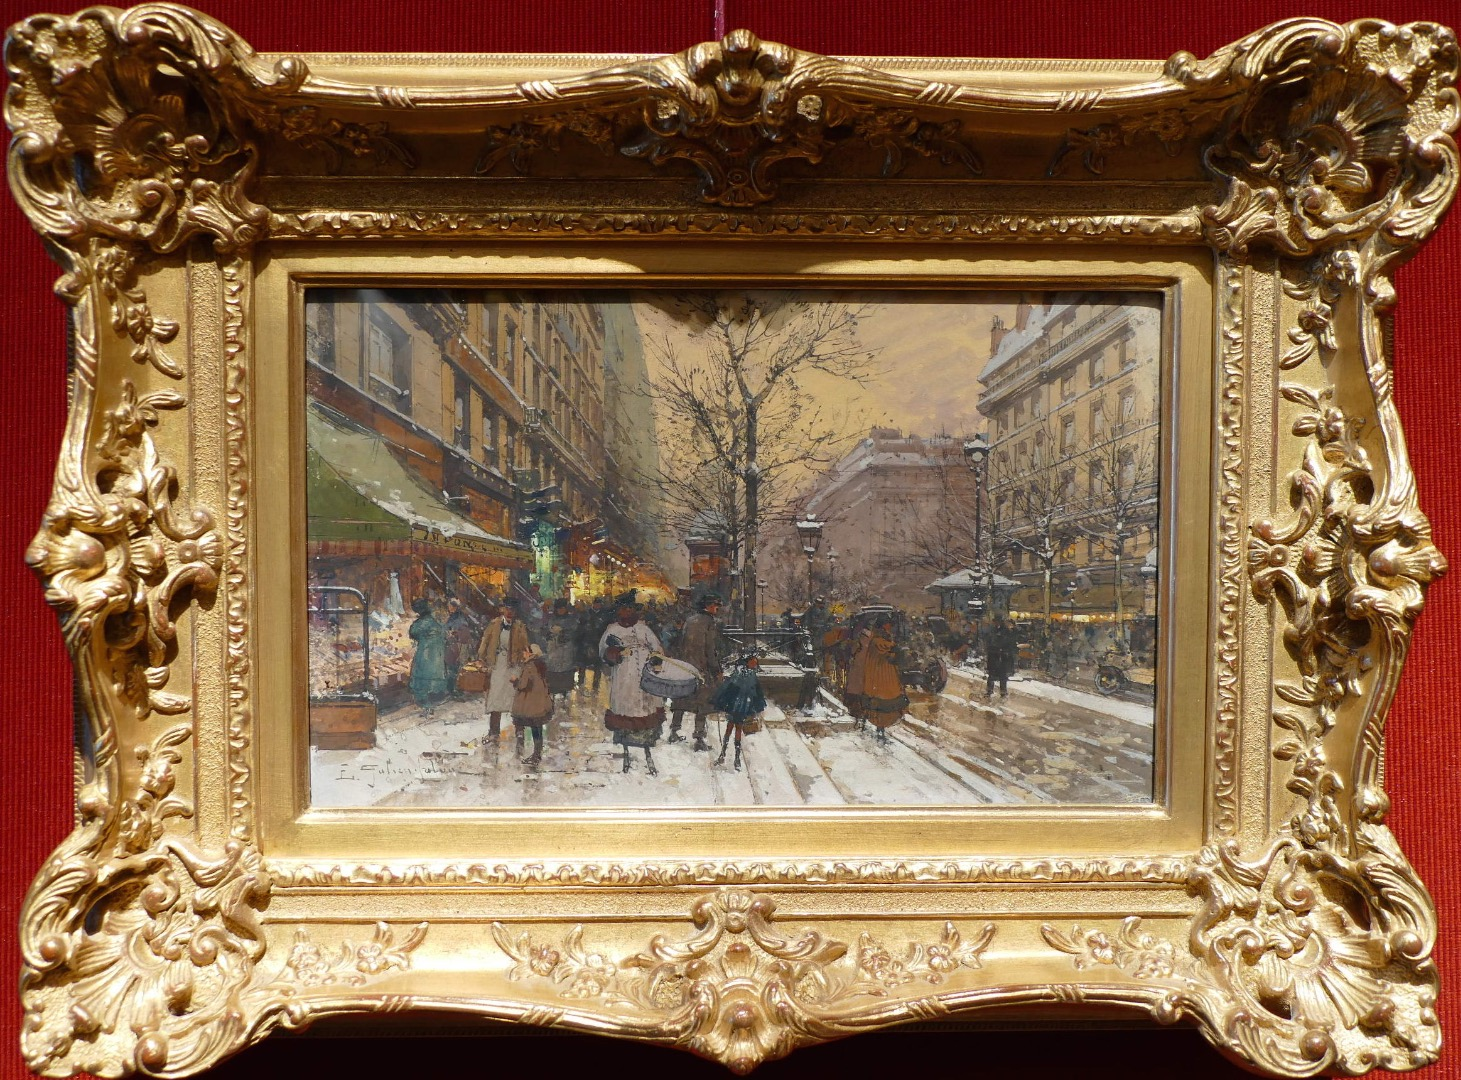 GALIEN LALOUE EUGENE FRENCH PAINTING 20Th CENTURY VIEW OF PARIS ANIMATION ON THE GRANDS BOULEVARDS GOUACHE SIGNED